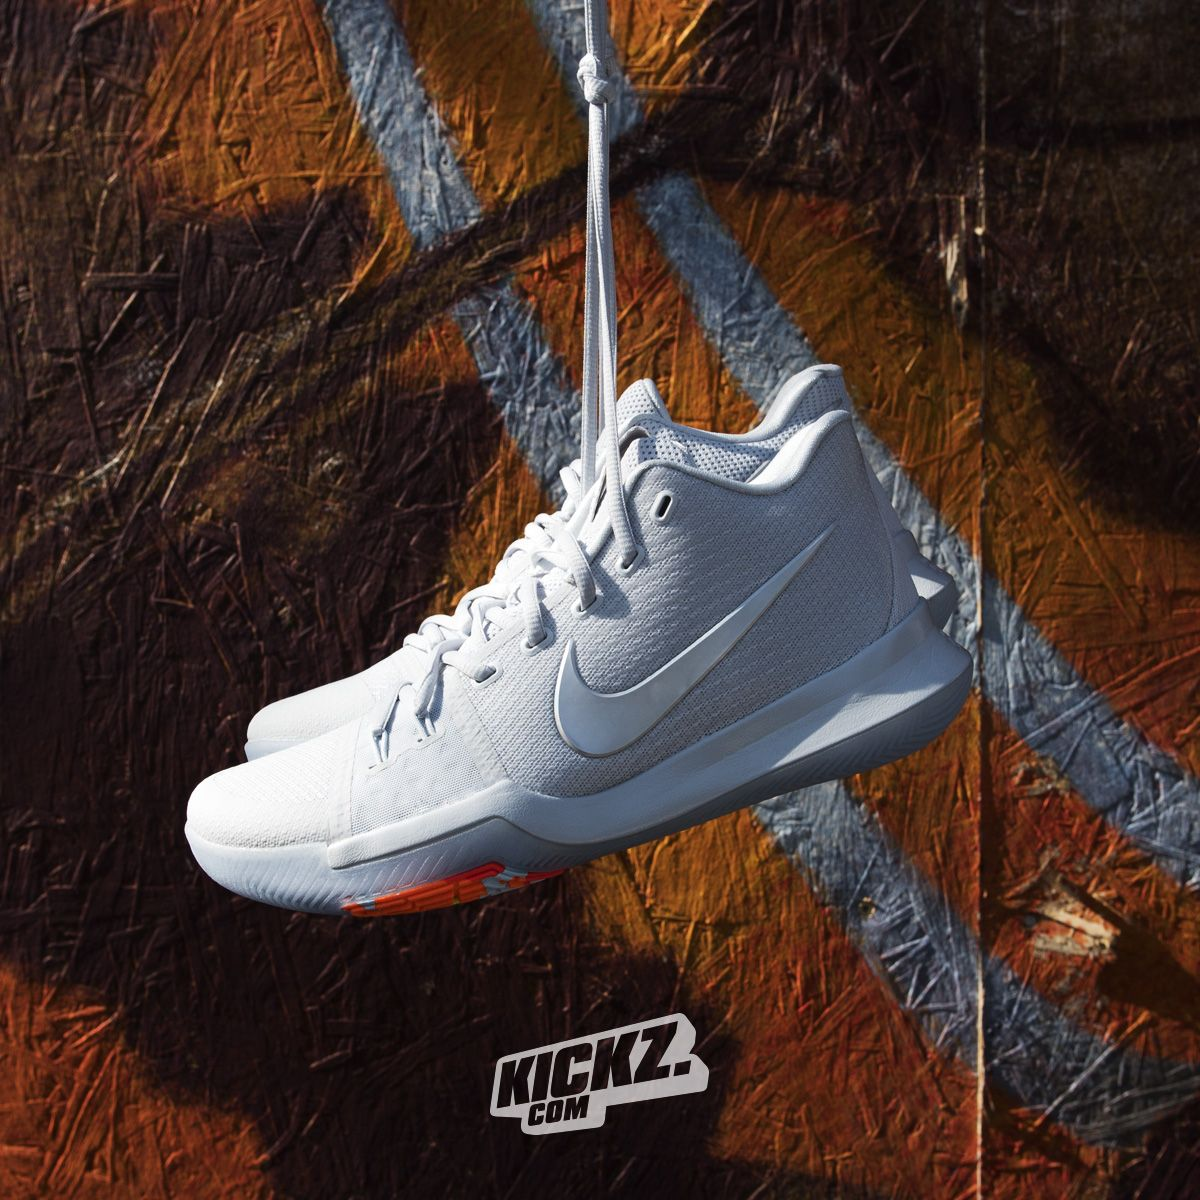 detailed look f3da4 d7622 Nike Kyrie 3 TS. What a beauty and clean af. Get it at KICKZ ...